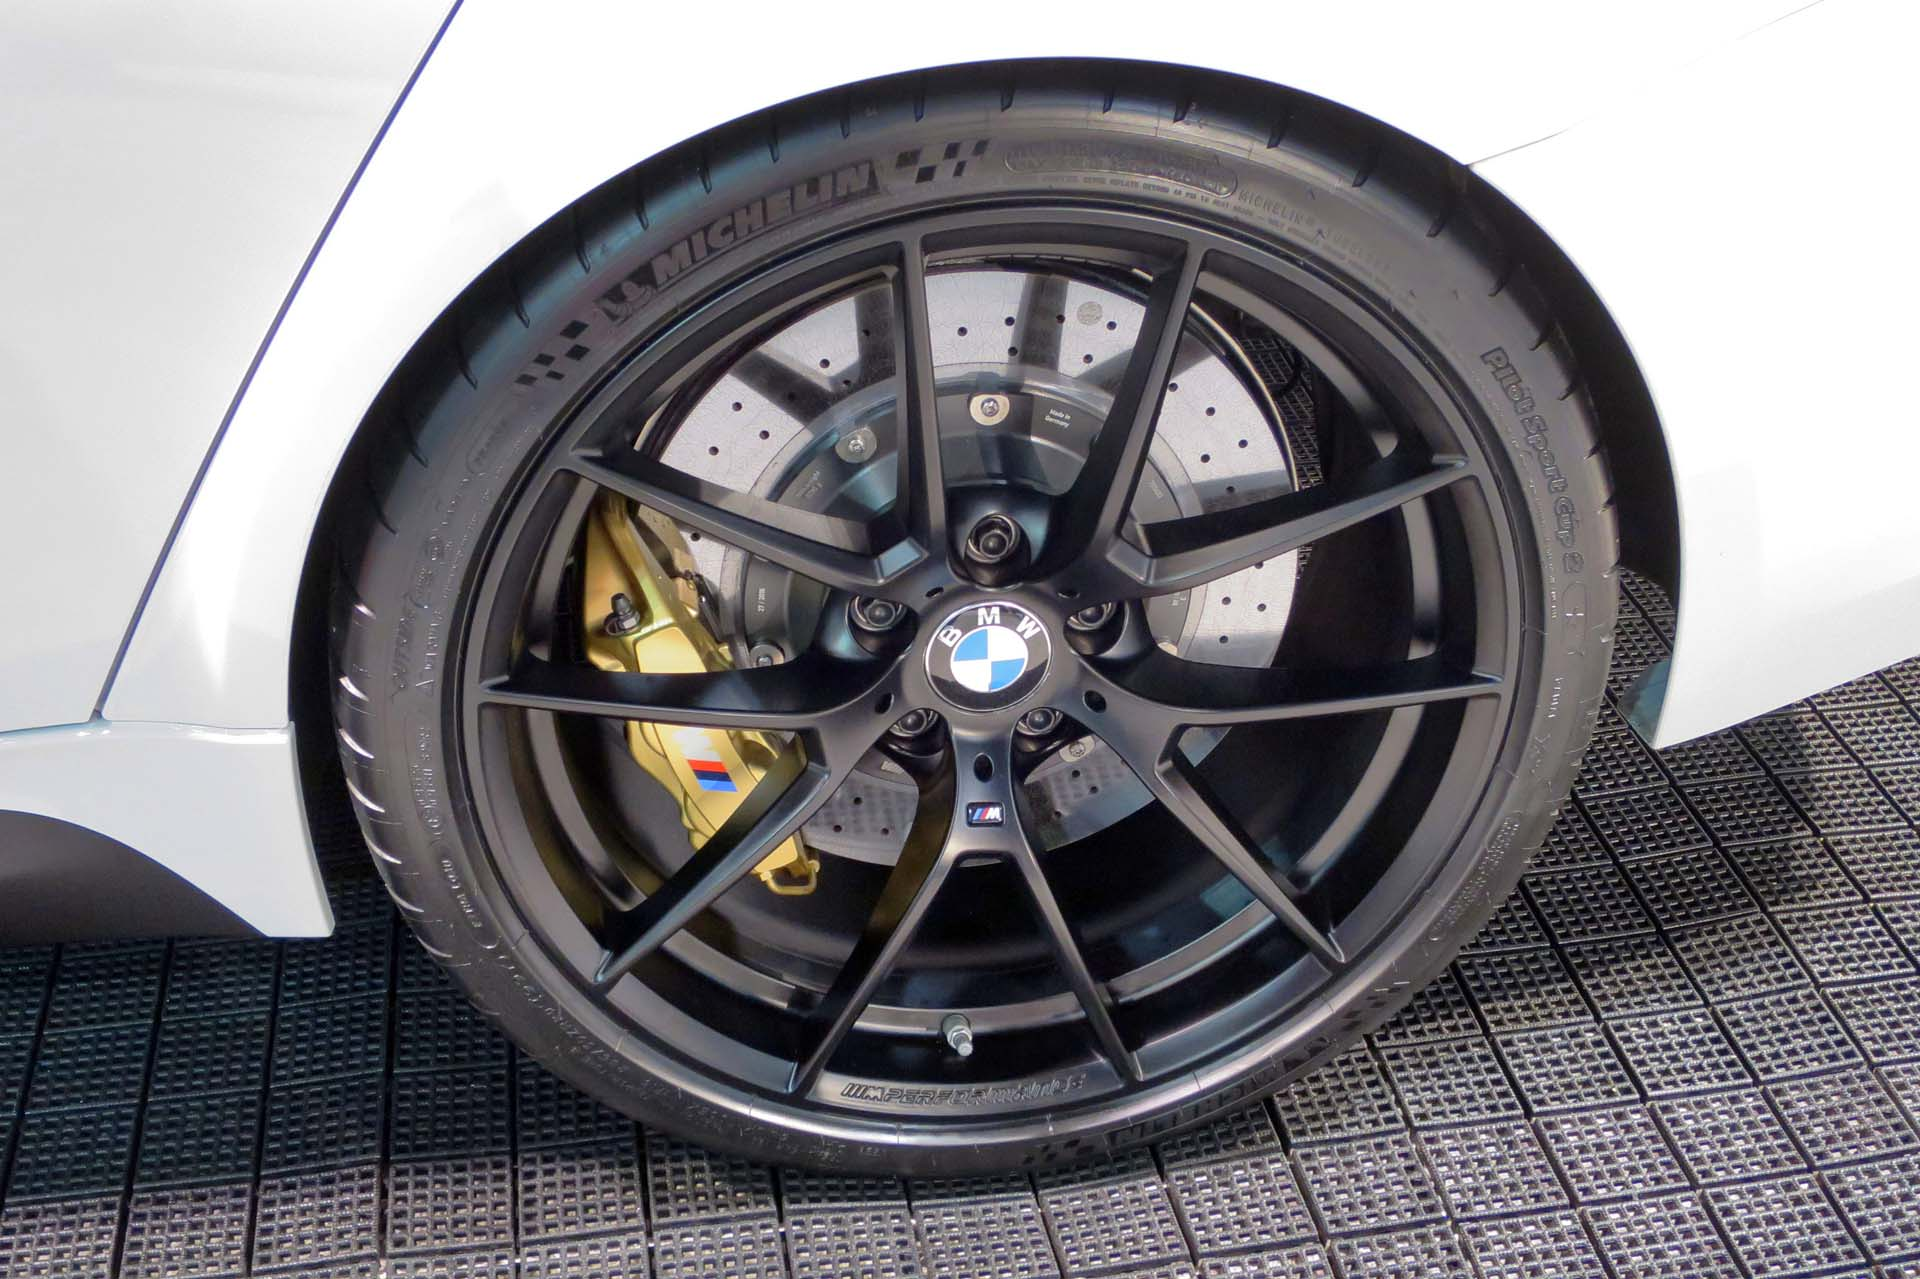 BMW offers new lightweight carbon fibre wheels for its M performance editions.